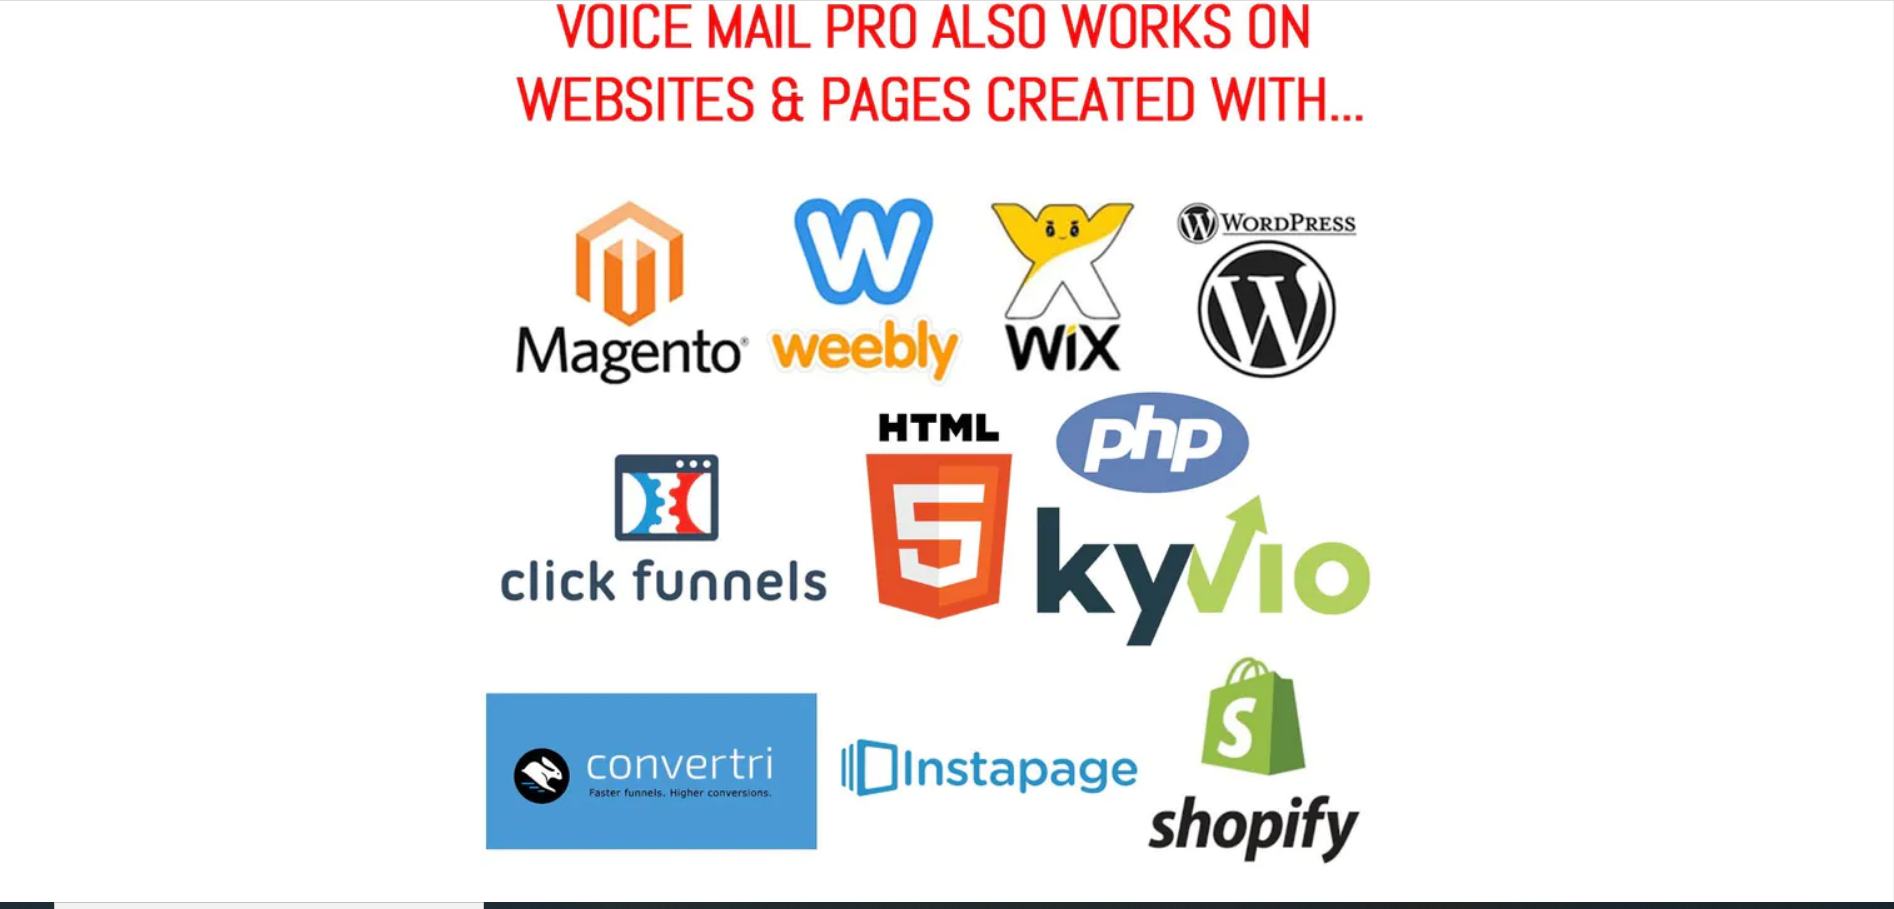 VoiceMailPro For Websites and Landing Pages